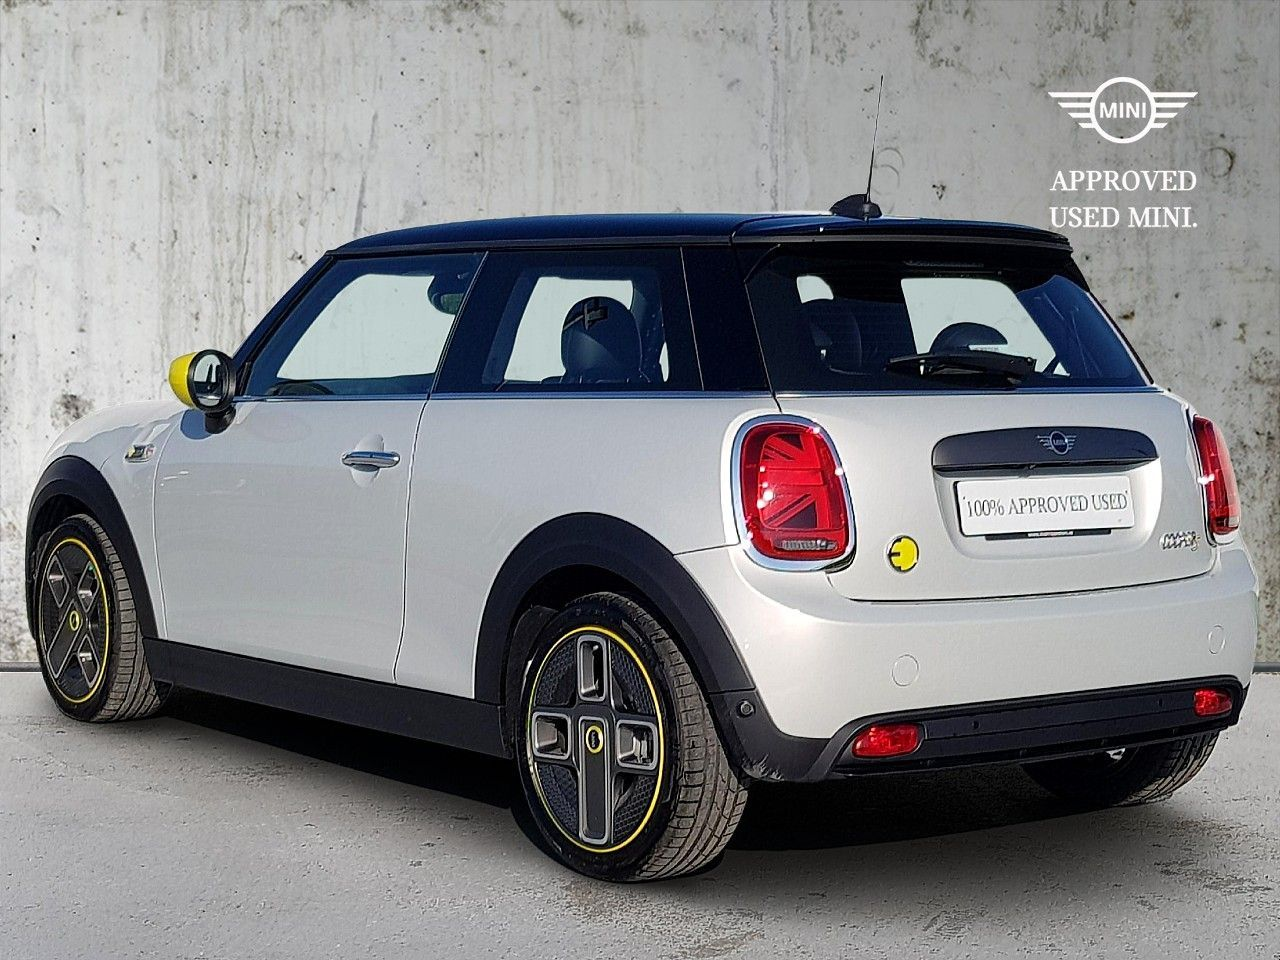 Used MINI Hatch Electric Level 2 (2020 (201))